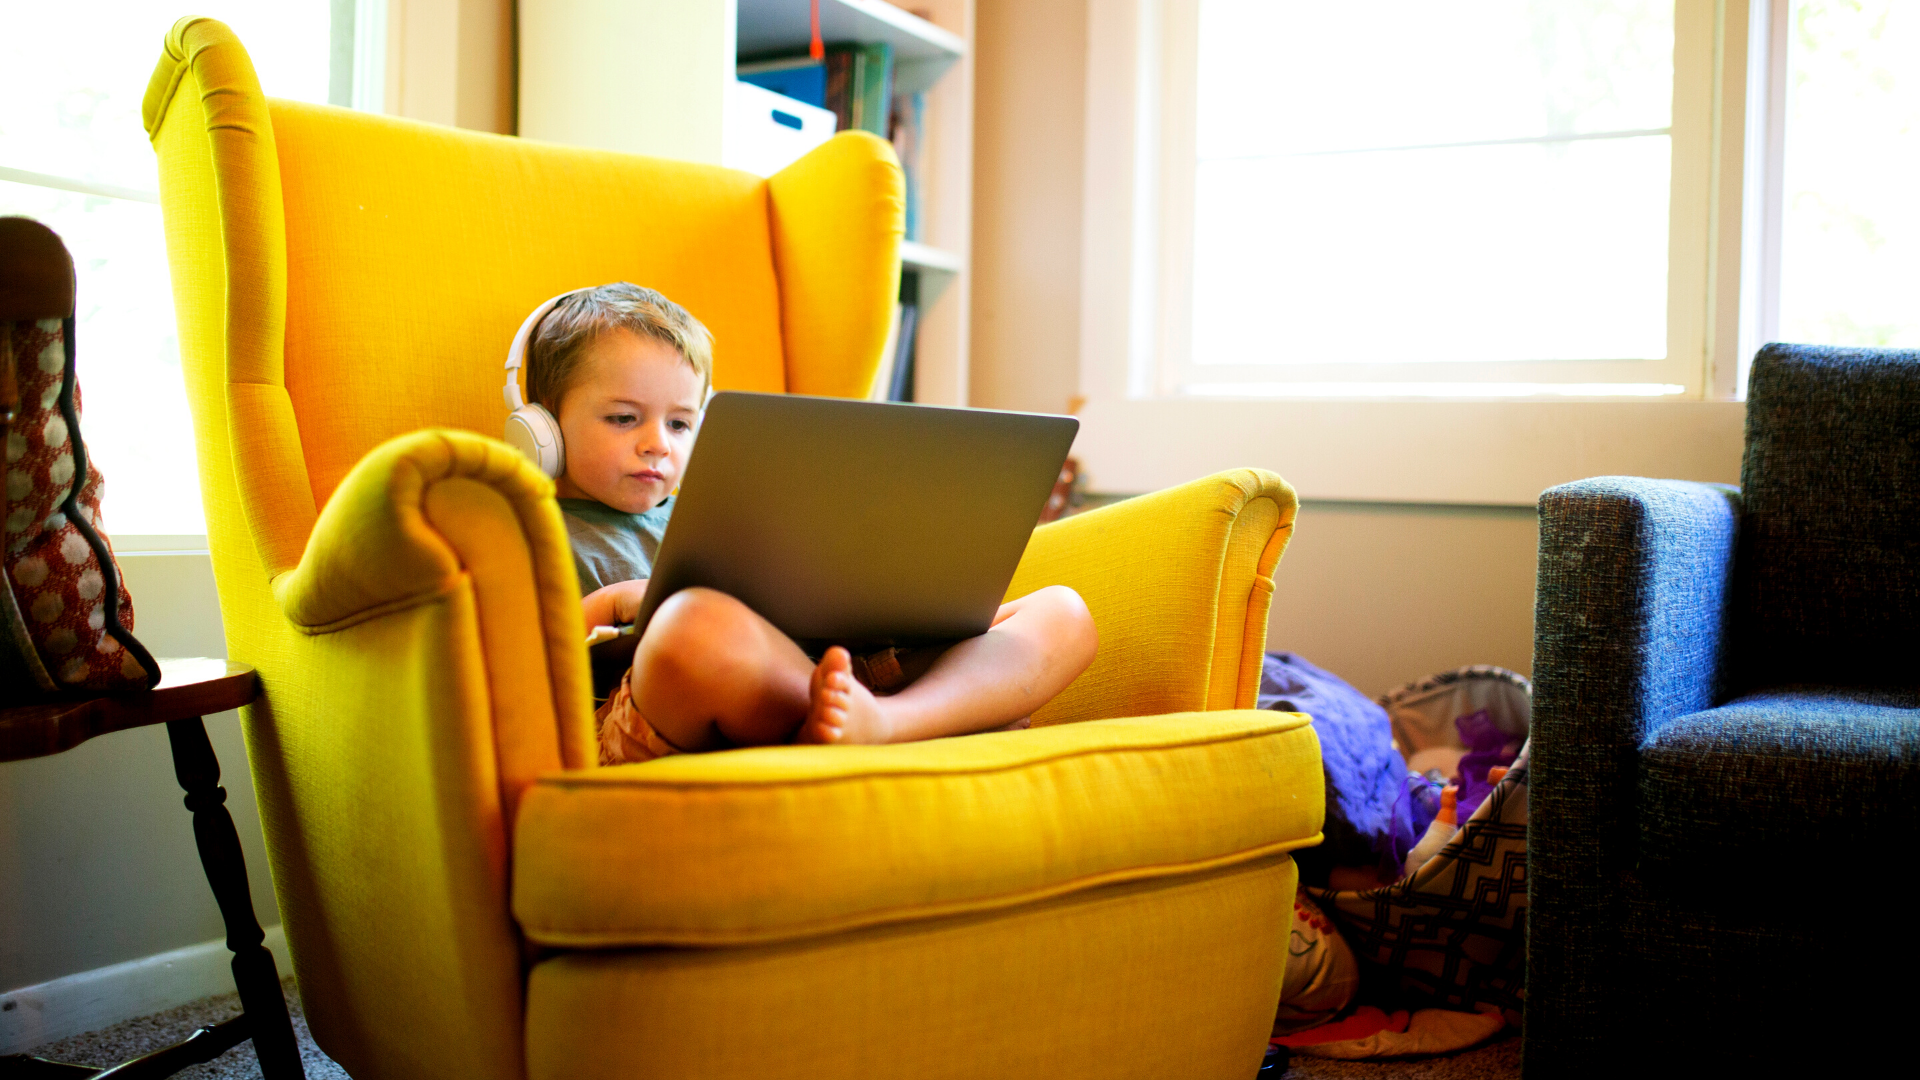 Read: The CARES Act: Broadband Relief for Low-Income Families